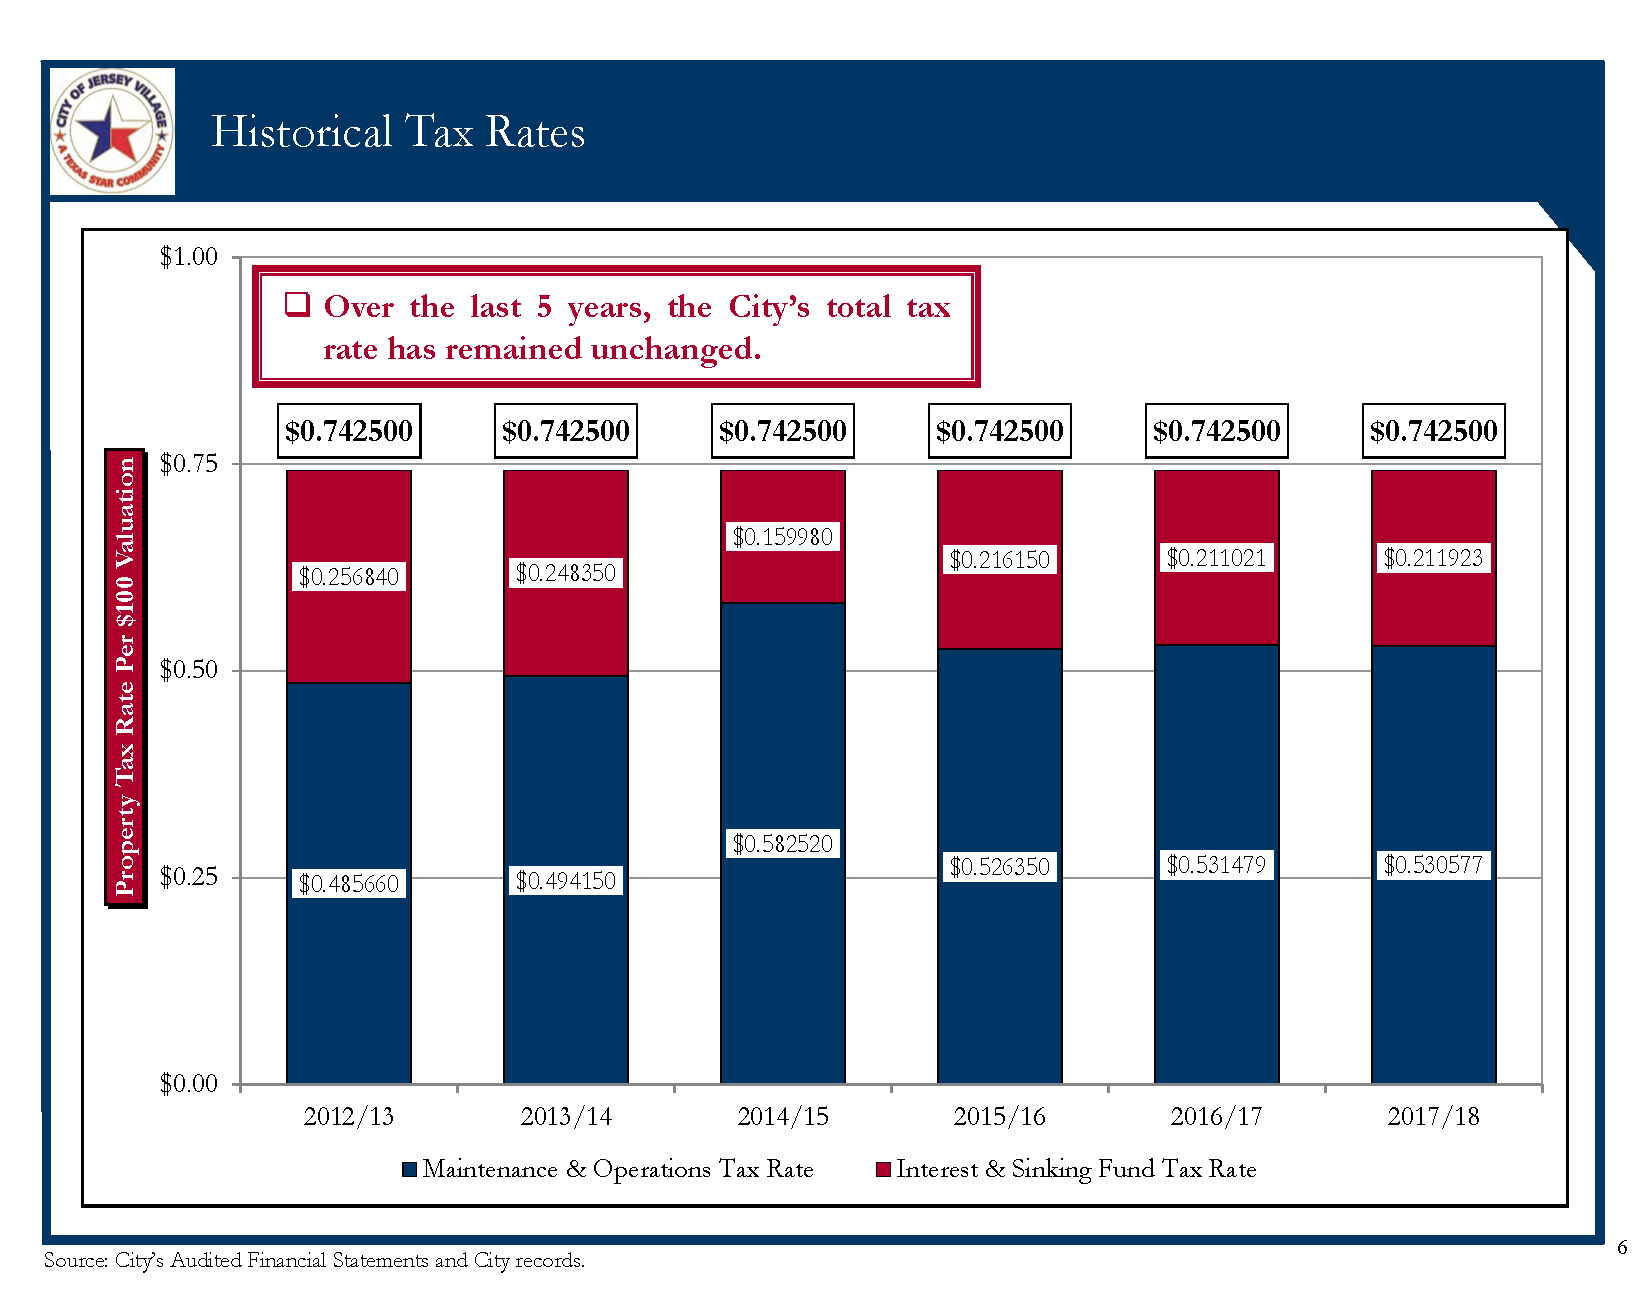 Historical Tax Rate Bar Graph